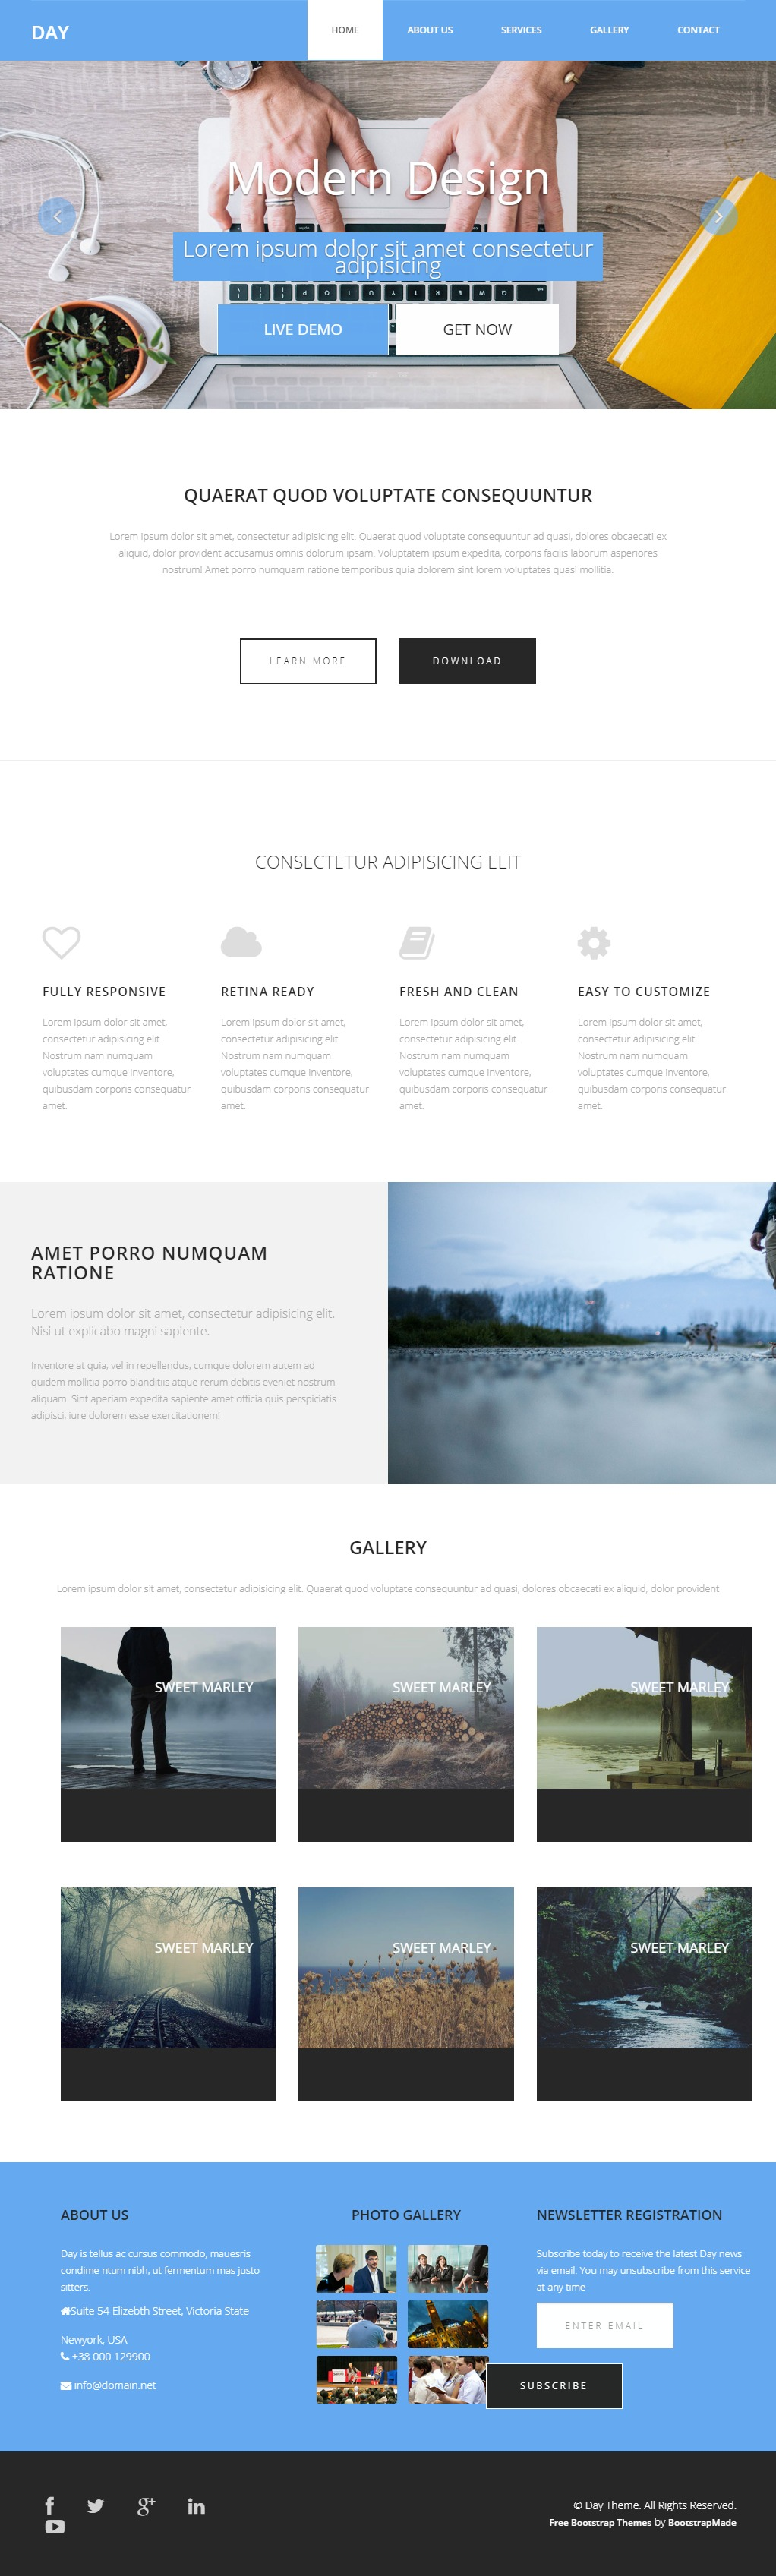 Day-HTML-Bootstrap-Template